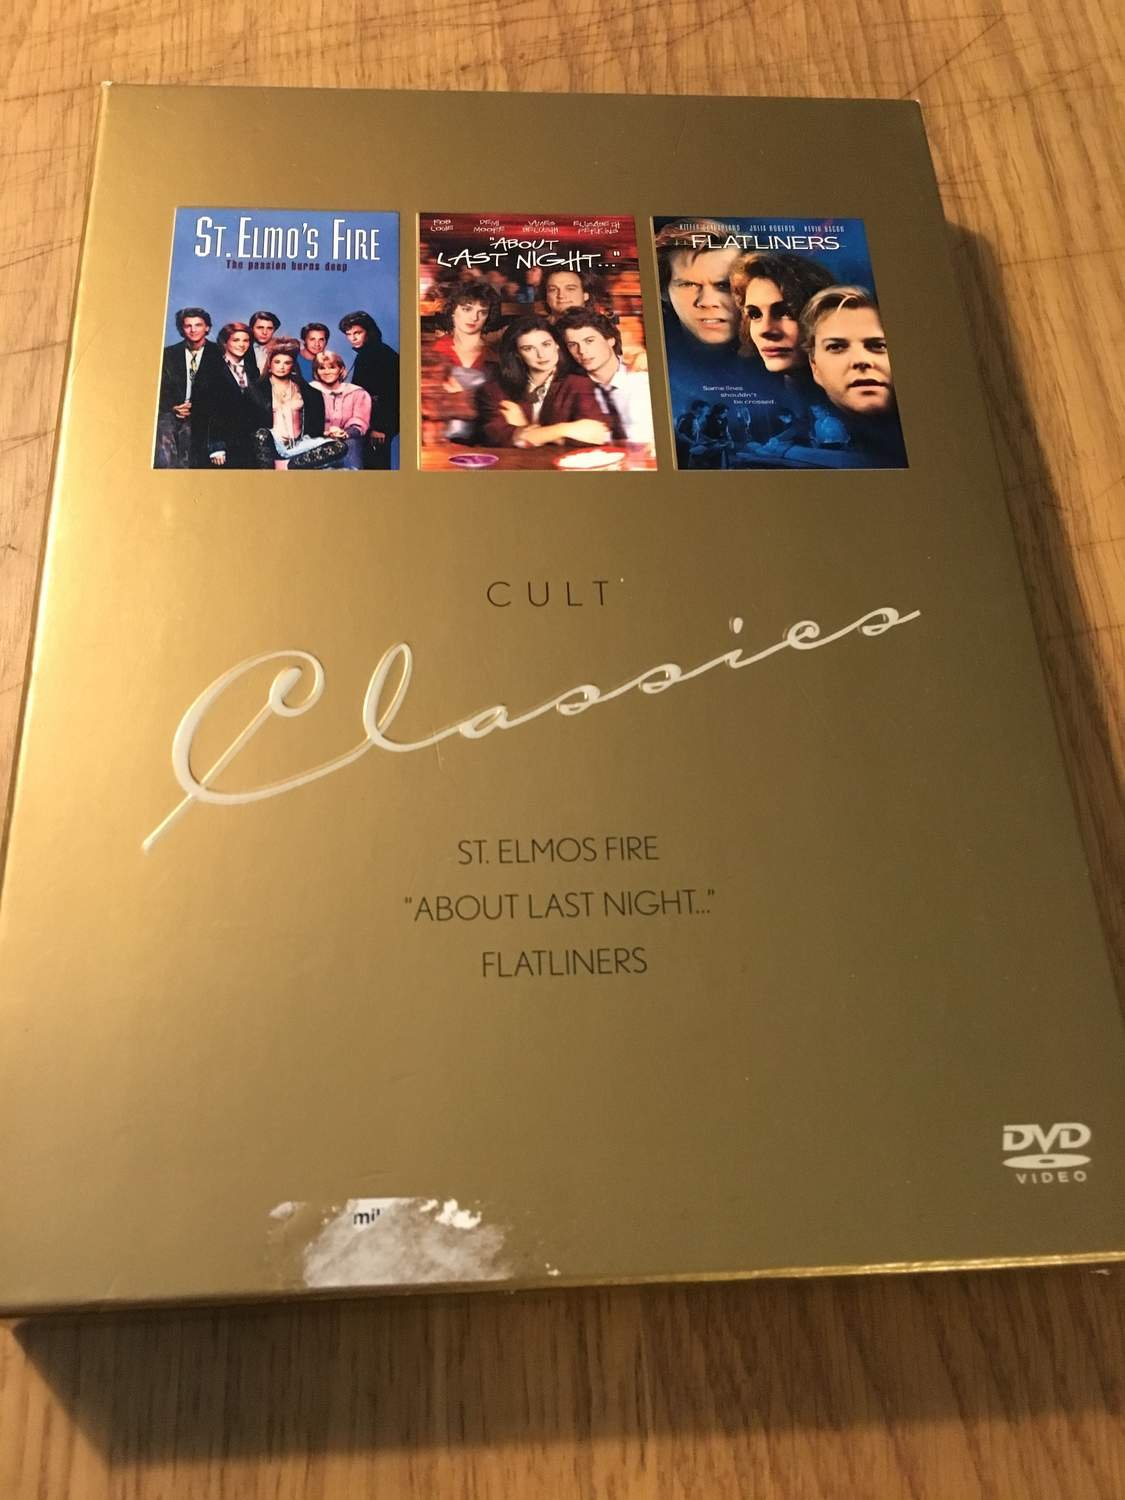 St. Elmo's Fire, About Last Night, Flatliners - DVD